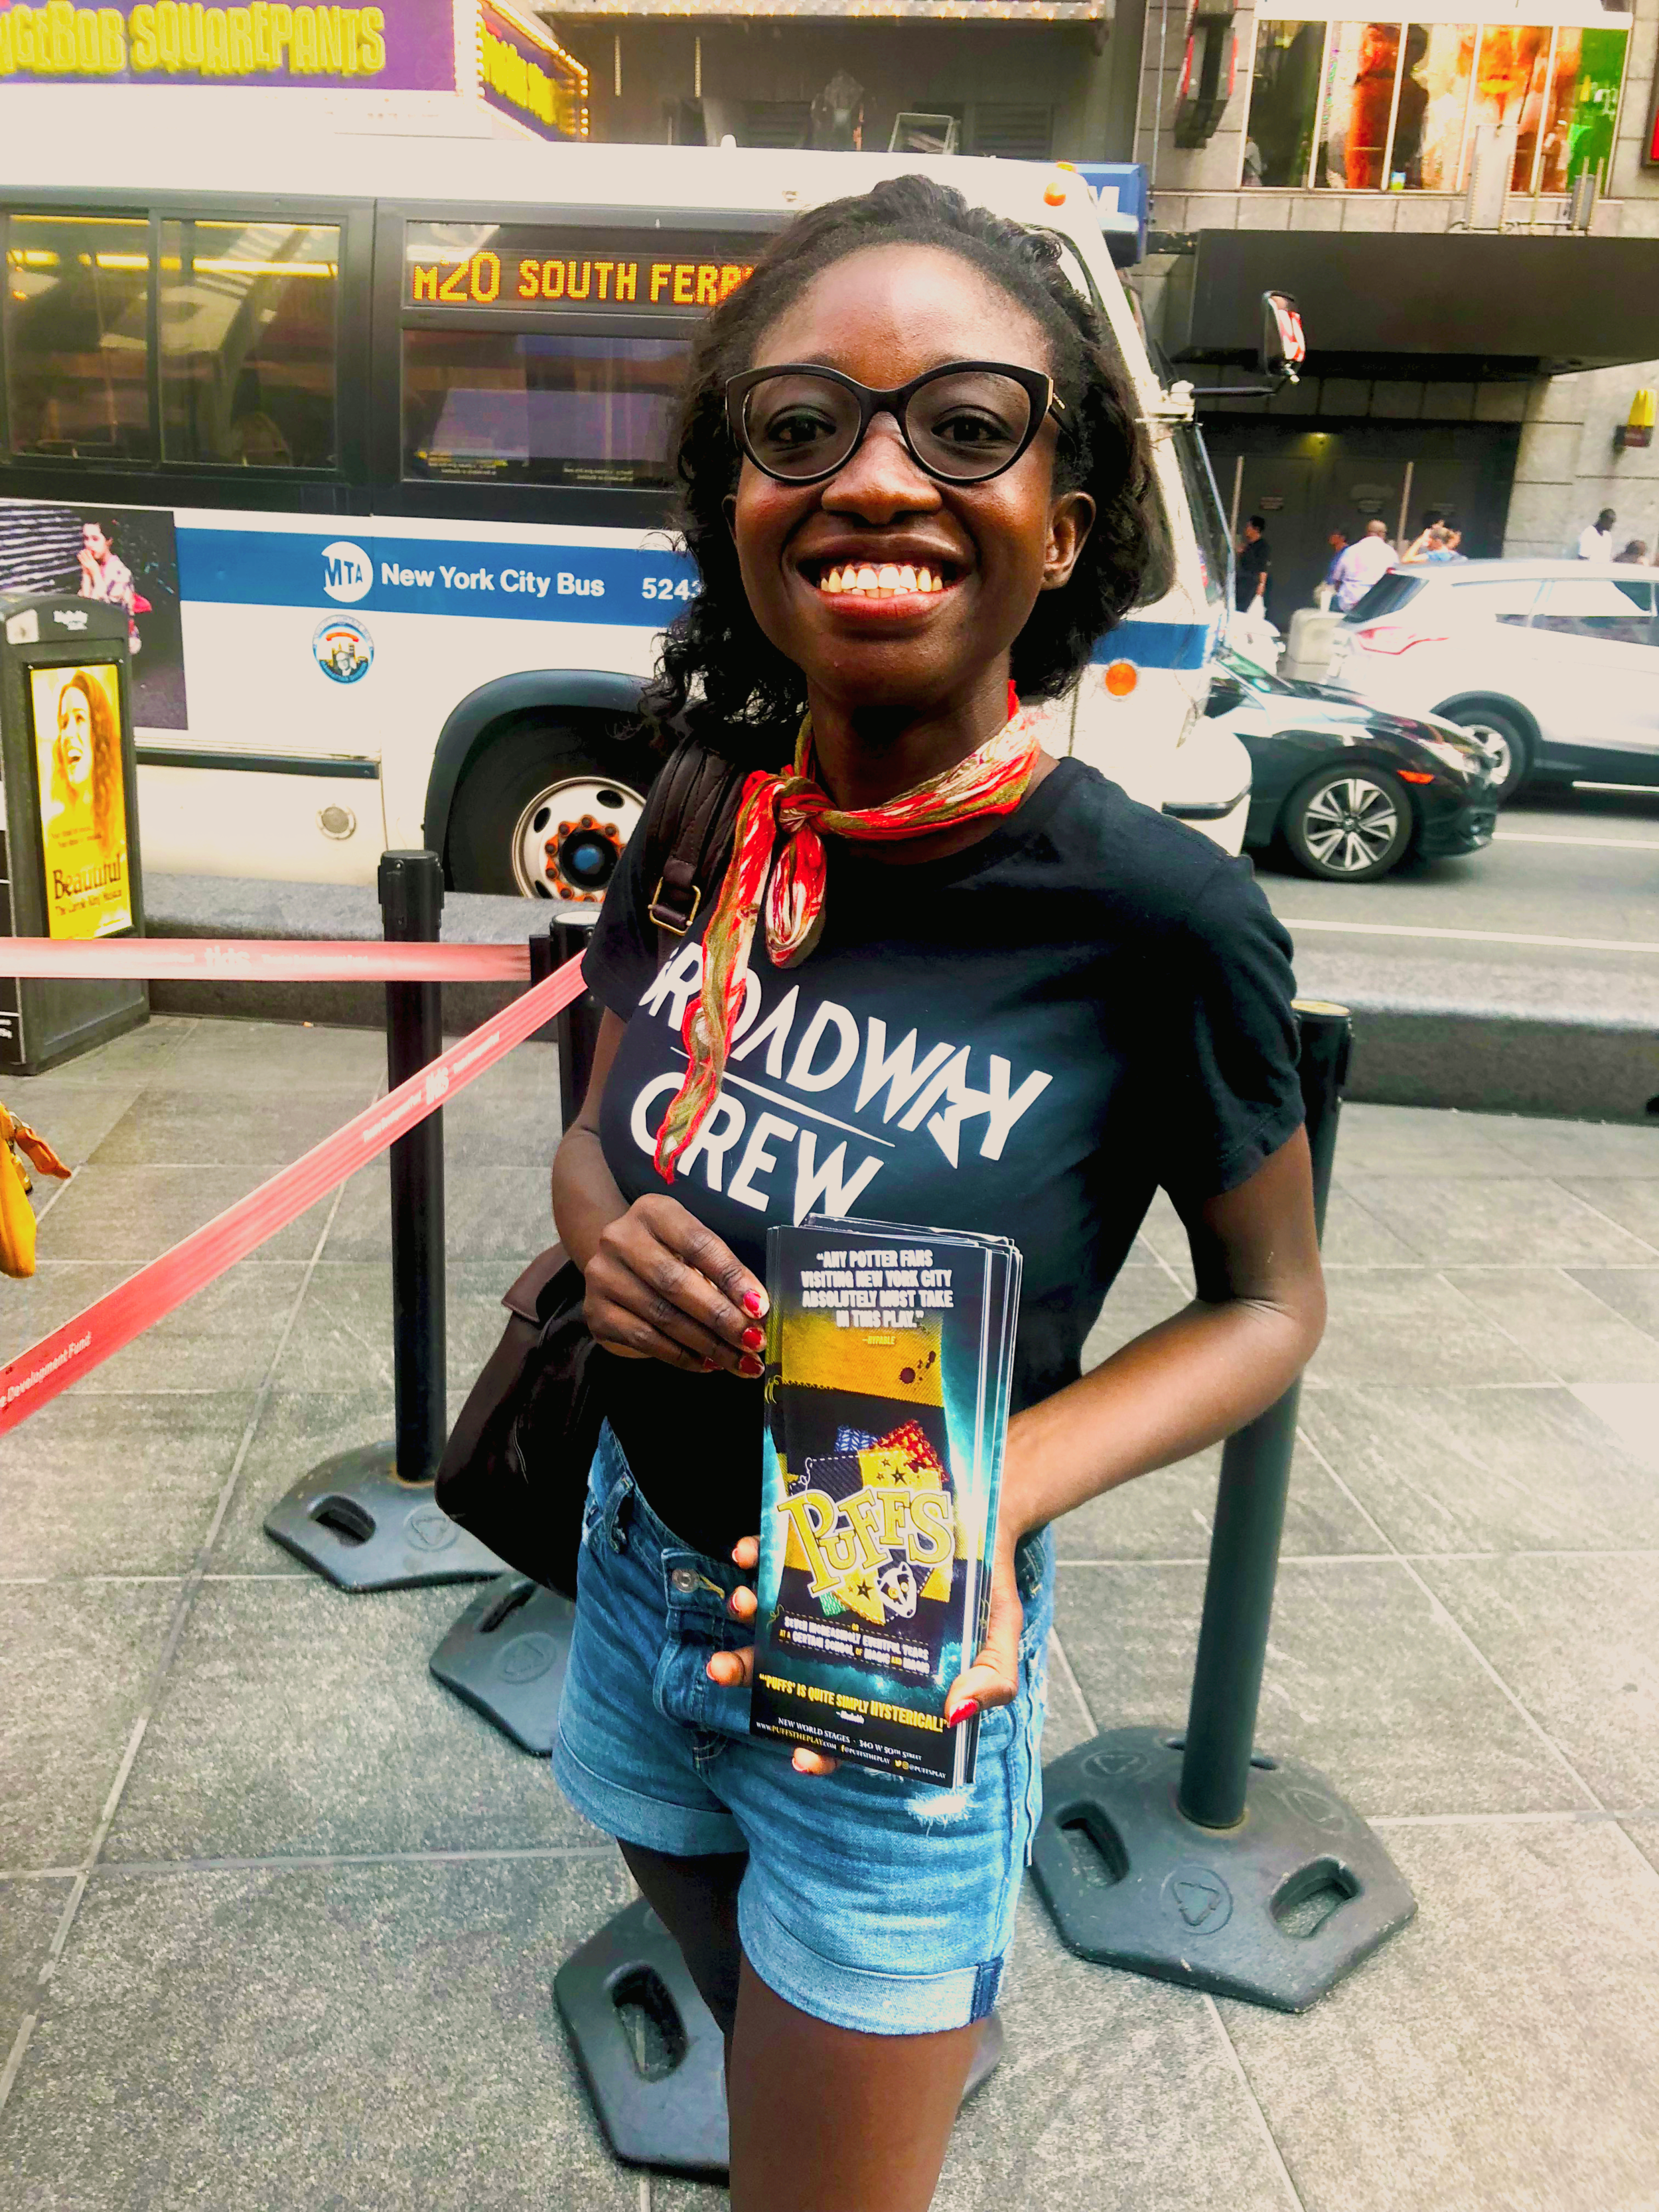 TKTS Representation and Promotions — Broadway Crew Street